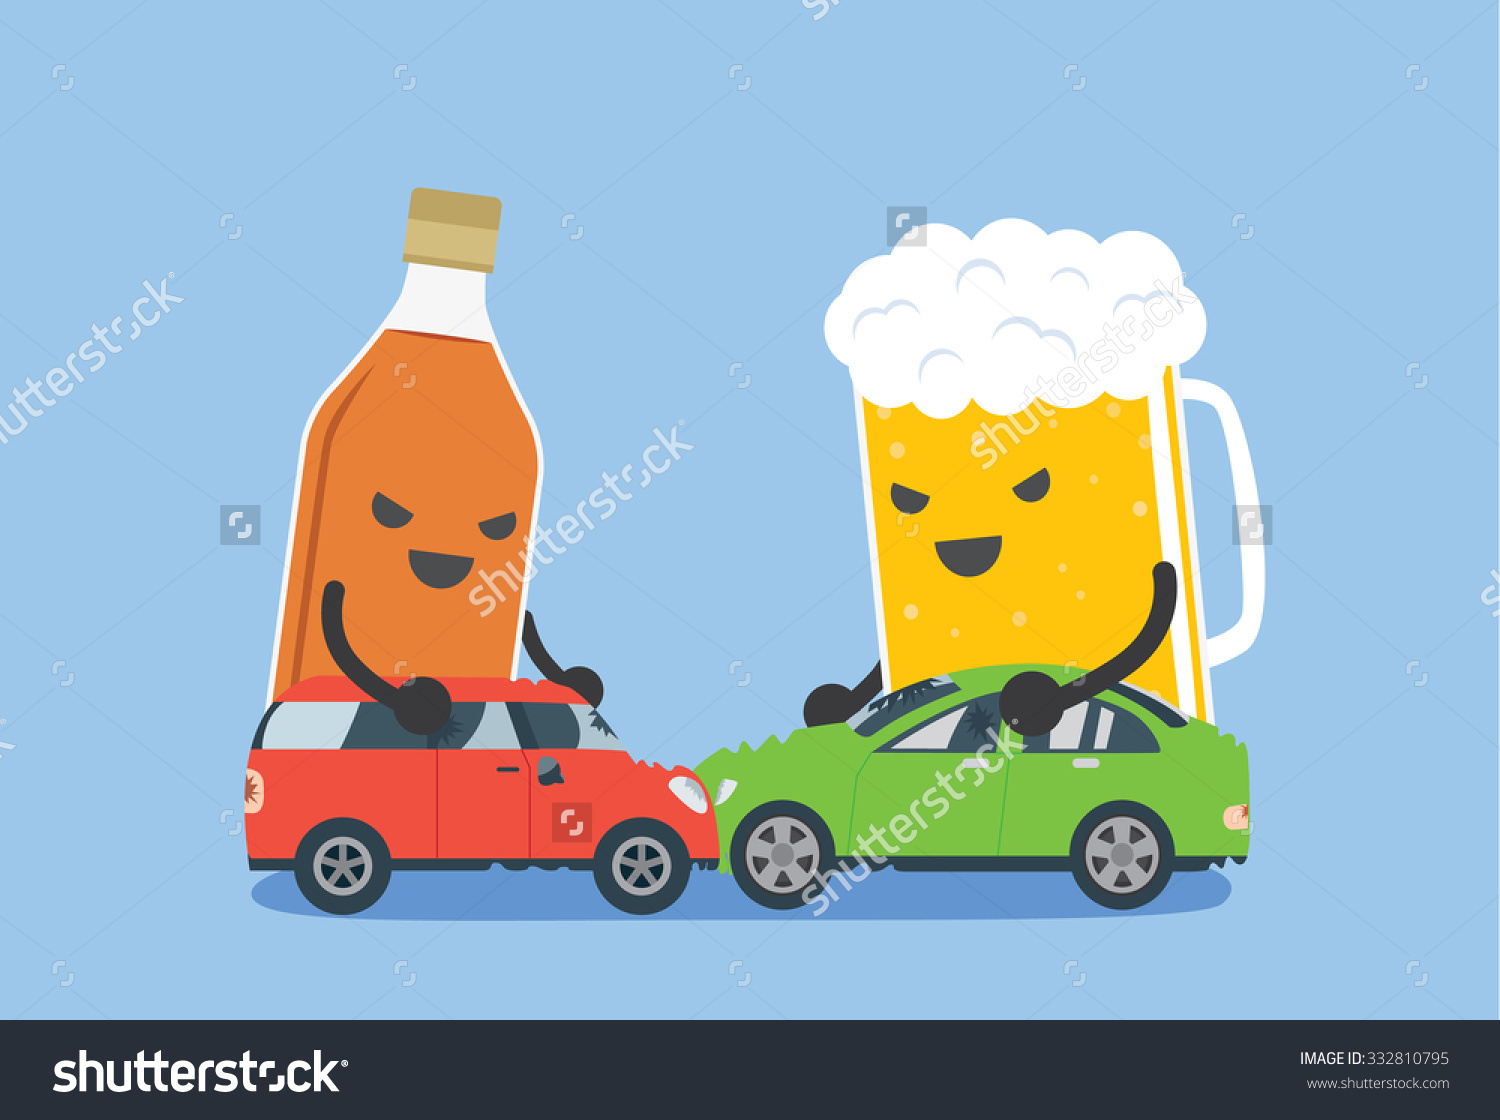 Alcohol Beer Push 2 Cars Make Stock Vector 332810795.